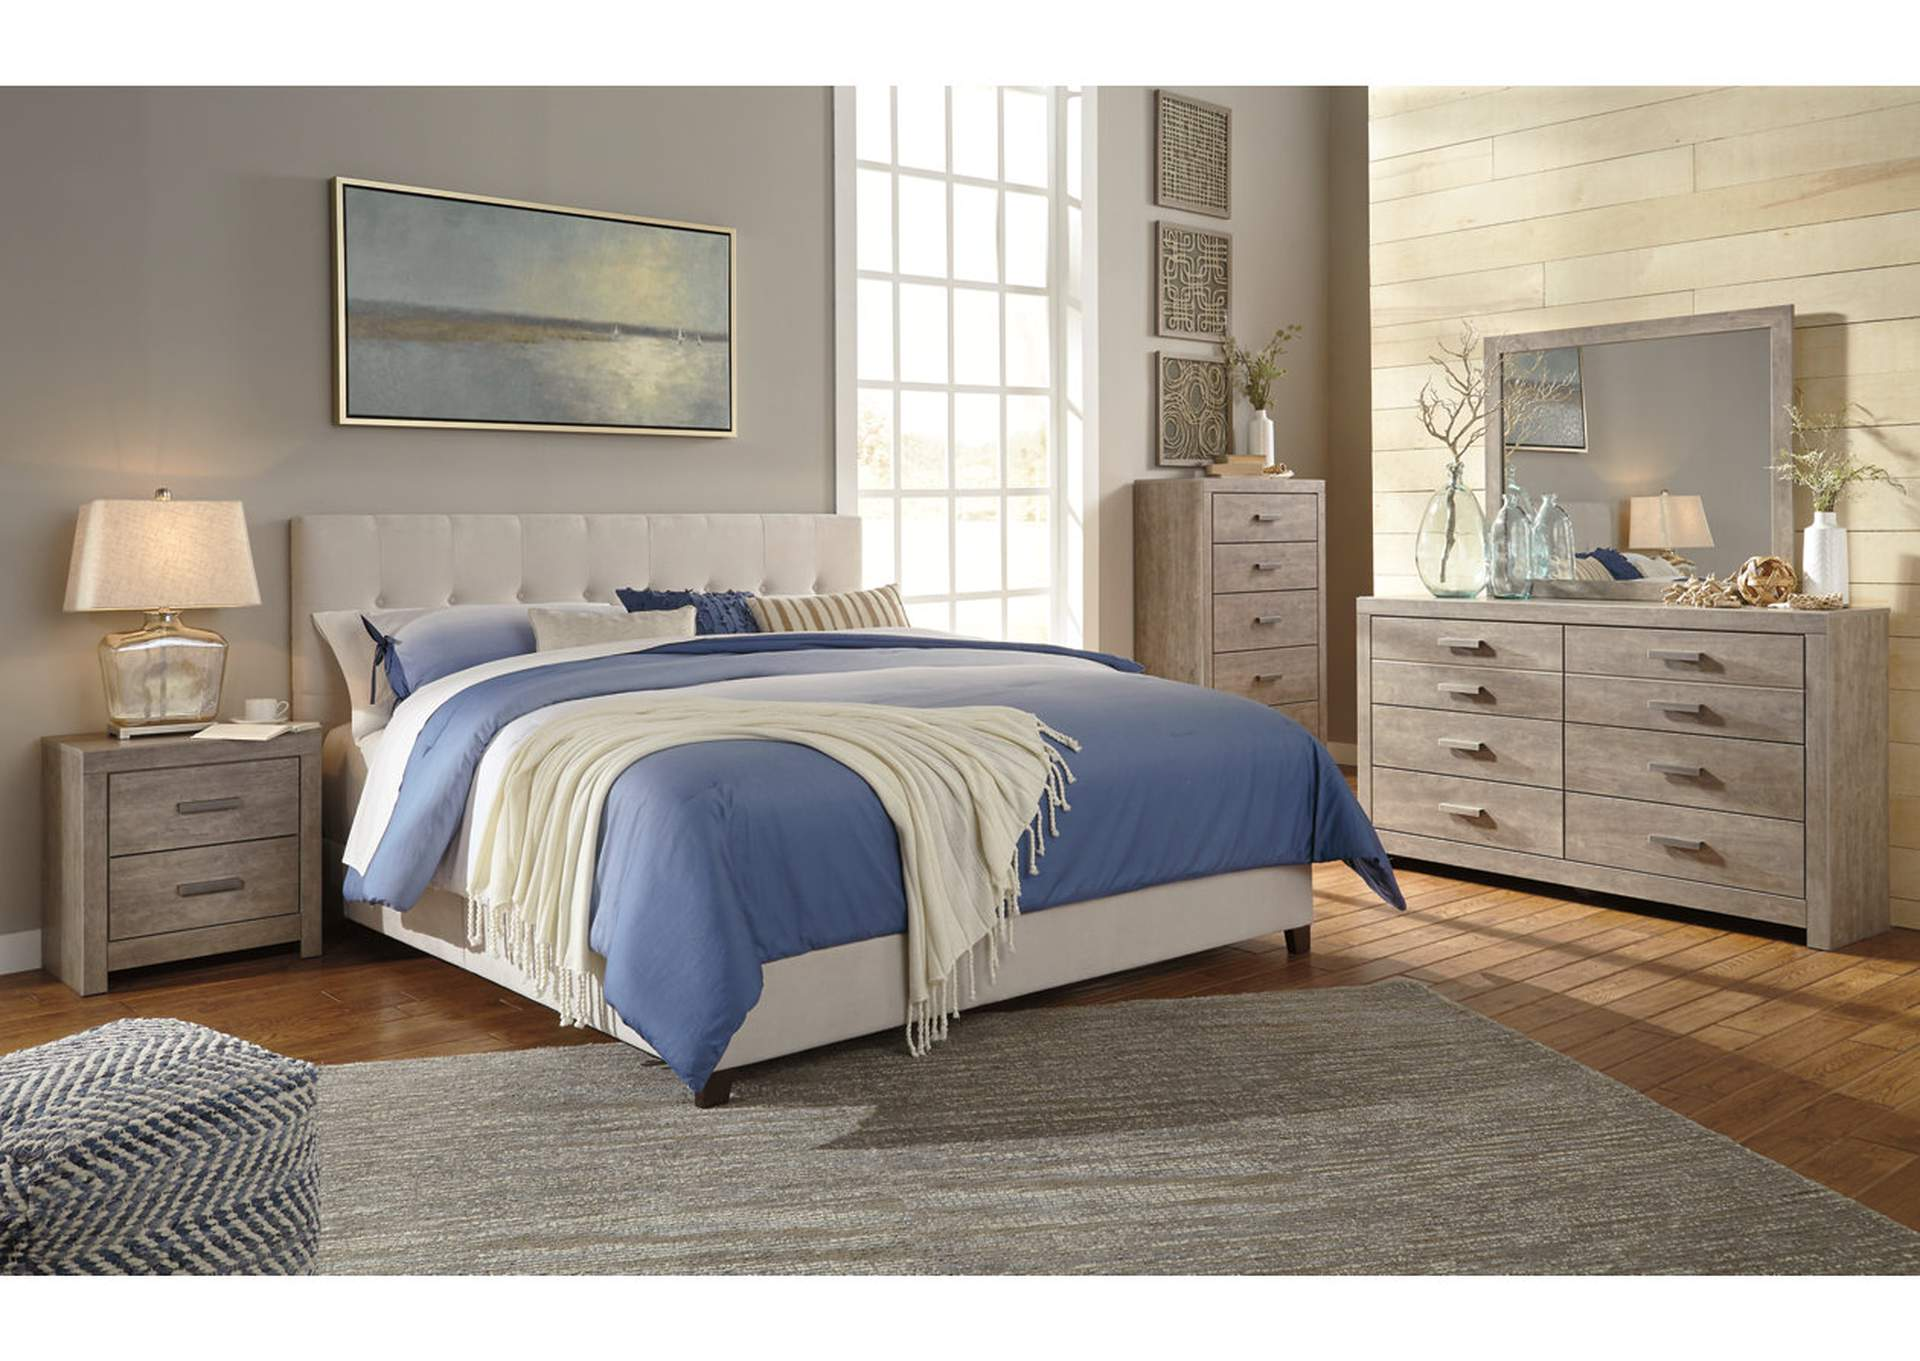 King Cream Upholstered Bed,Signature Design By Ashley